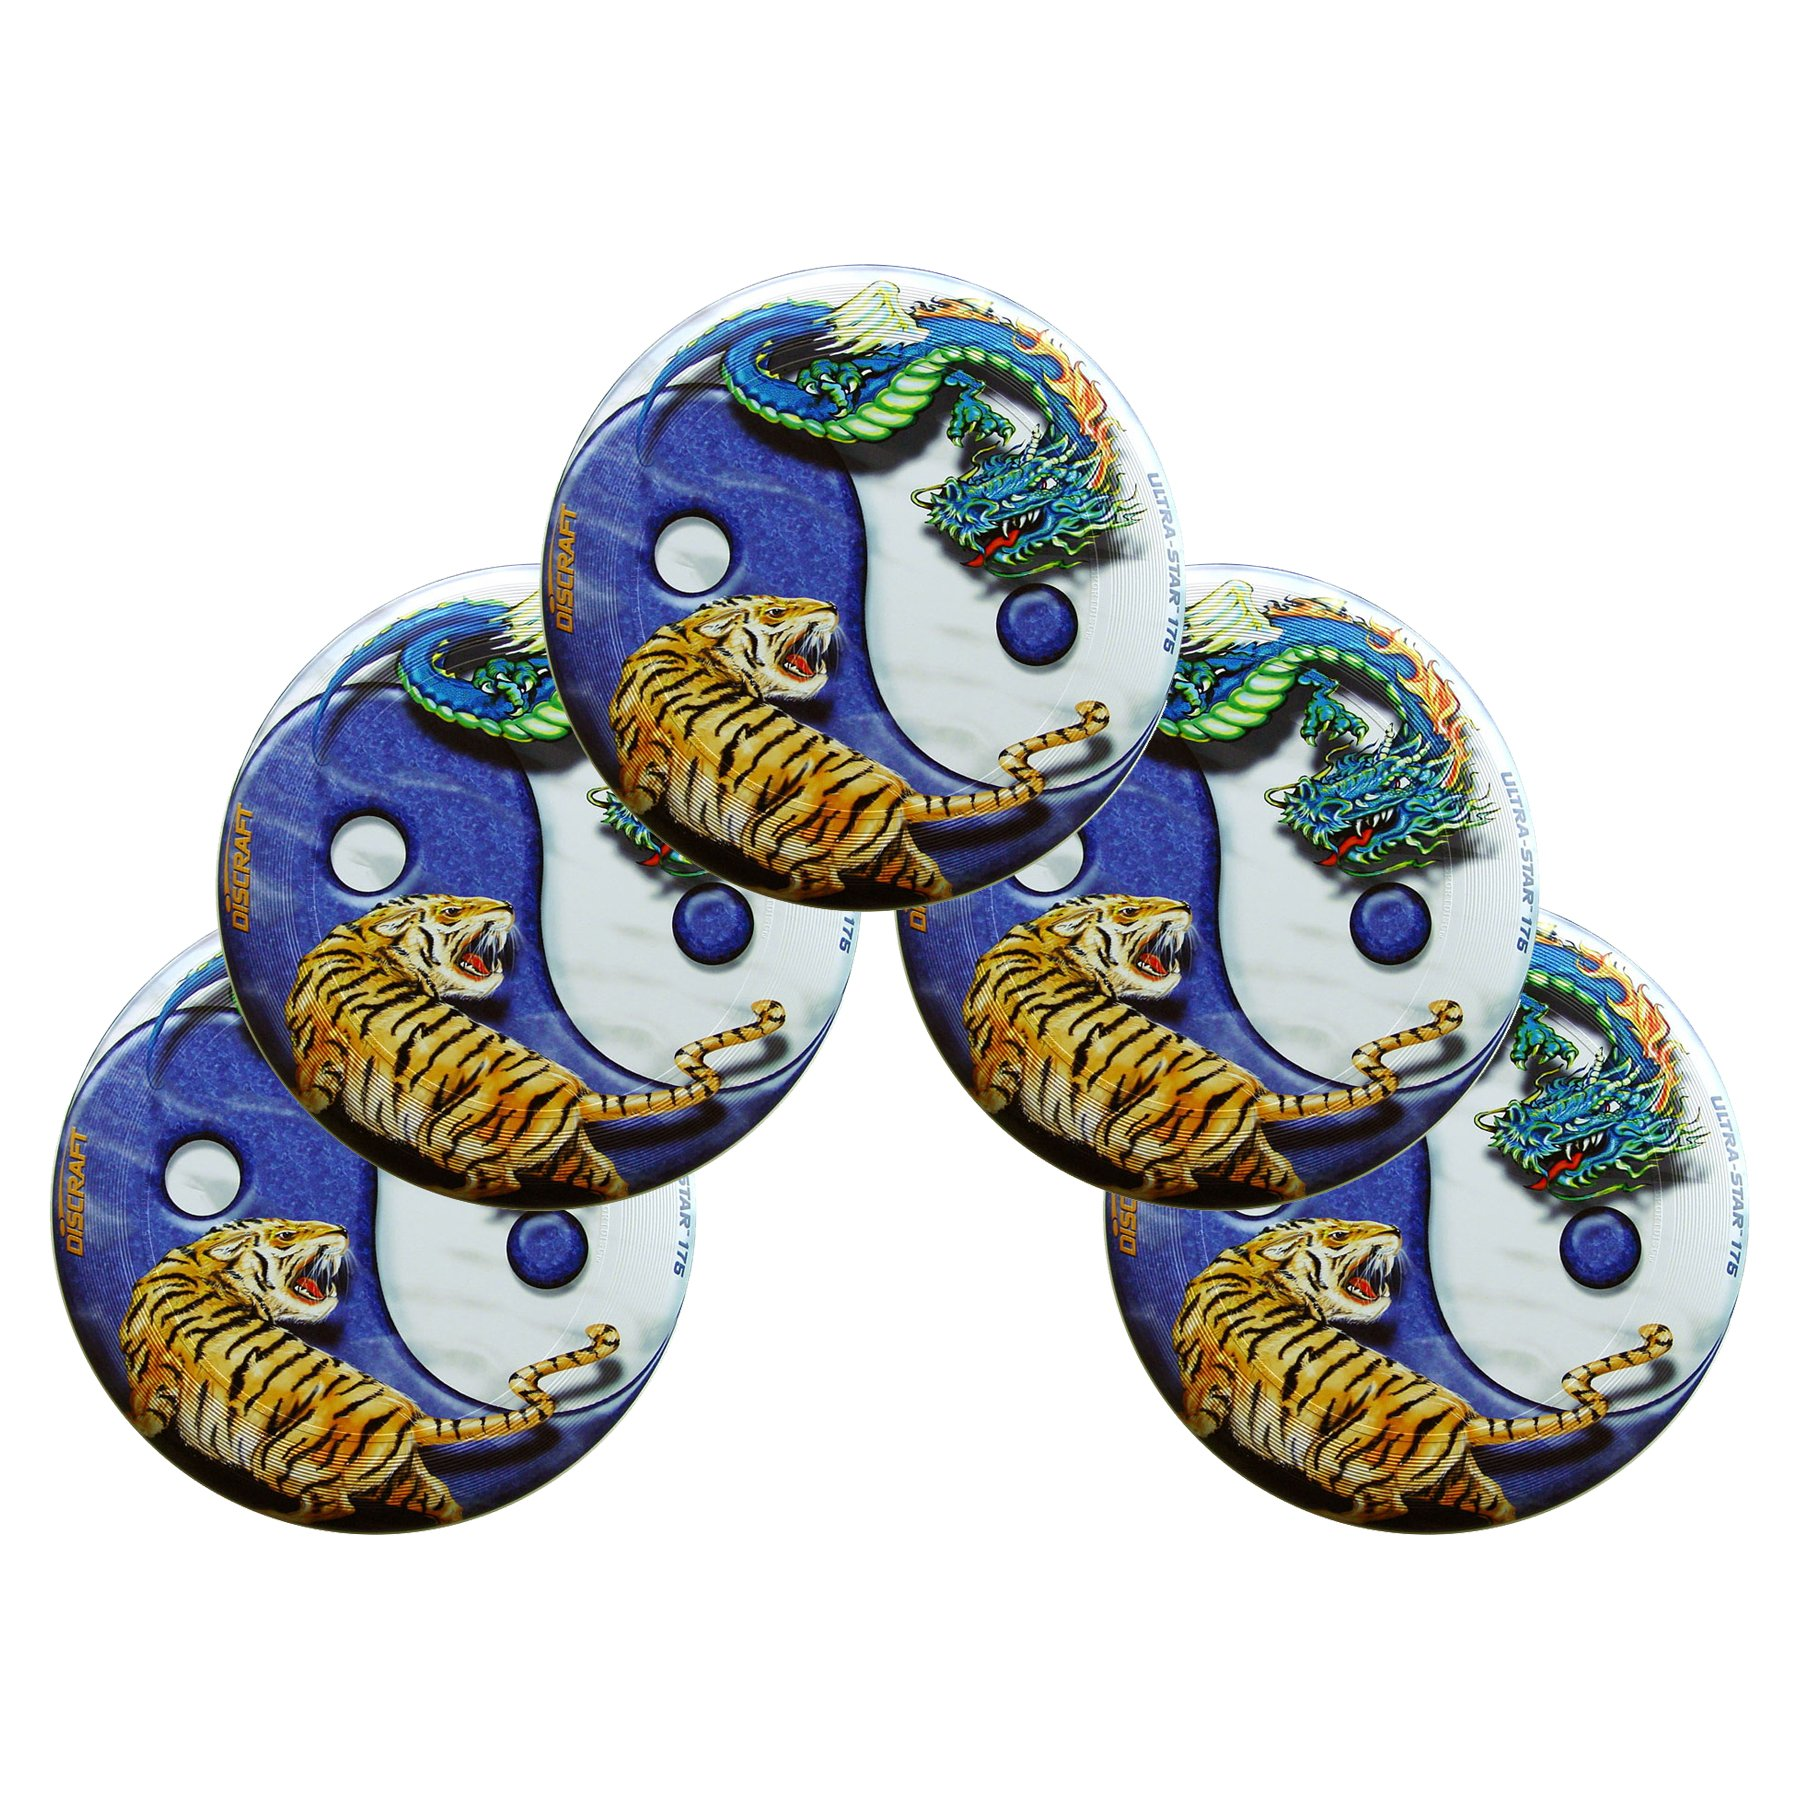 Discraft SuperColor Ultra-Star Yin Yang 175g Ultimate Sportdisc (5 Pack) by Discraft